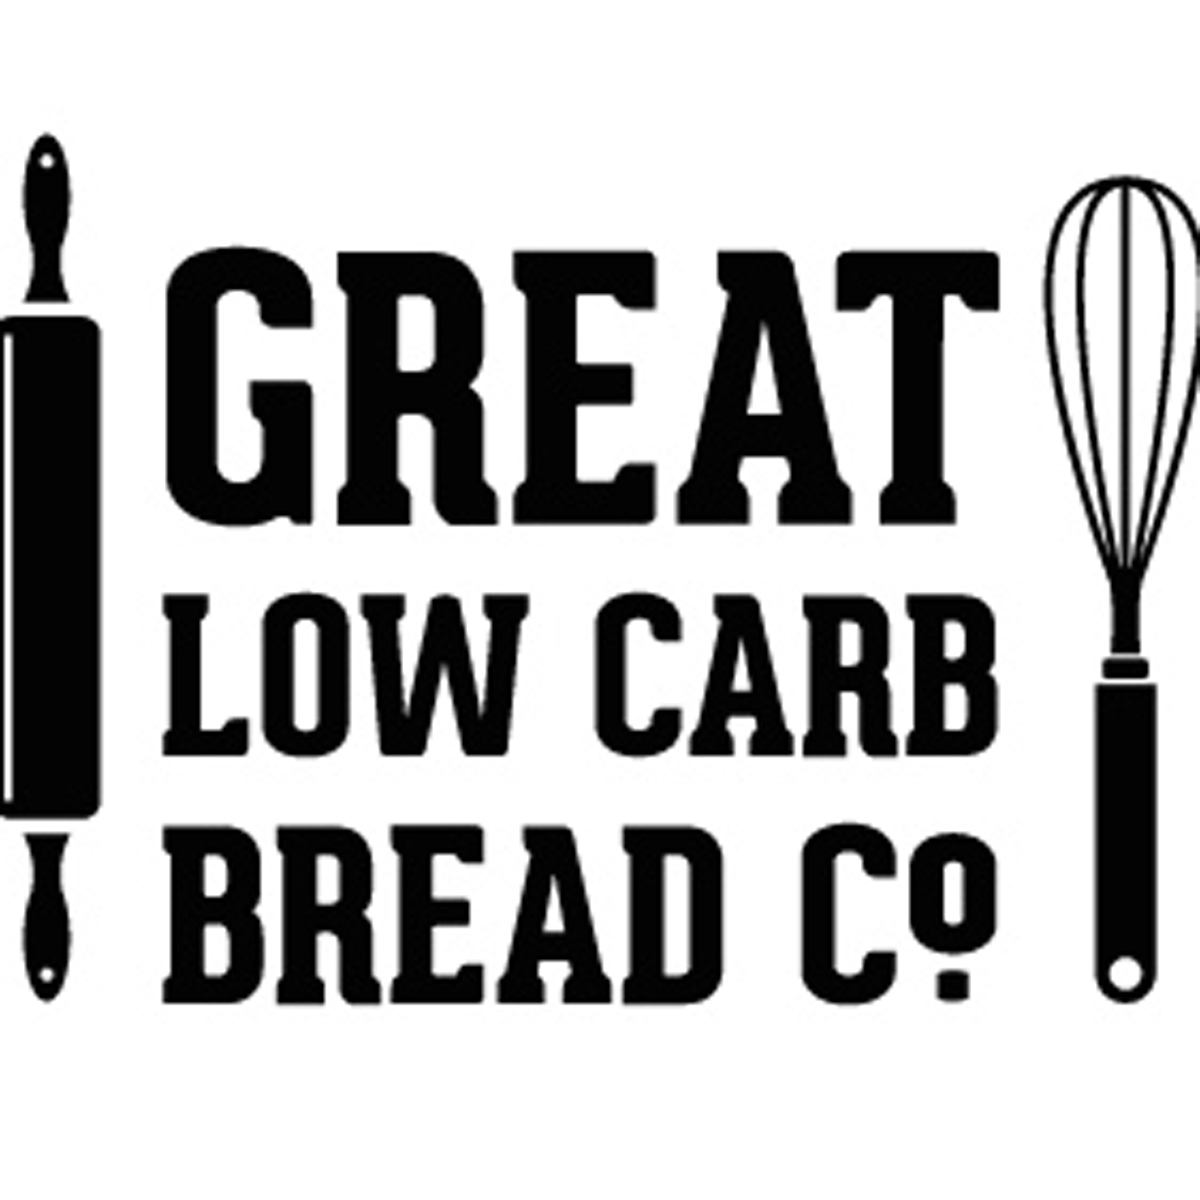 Great-Low-Carb-Bread-Co(3)